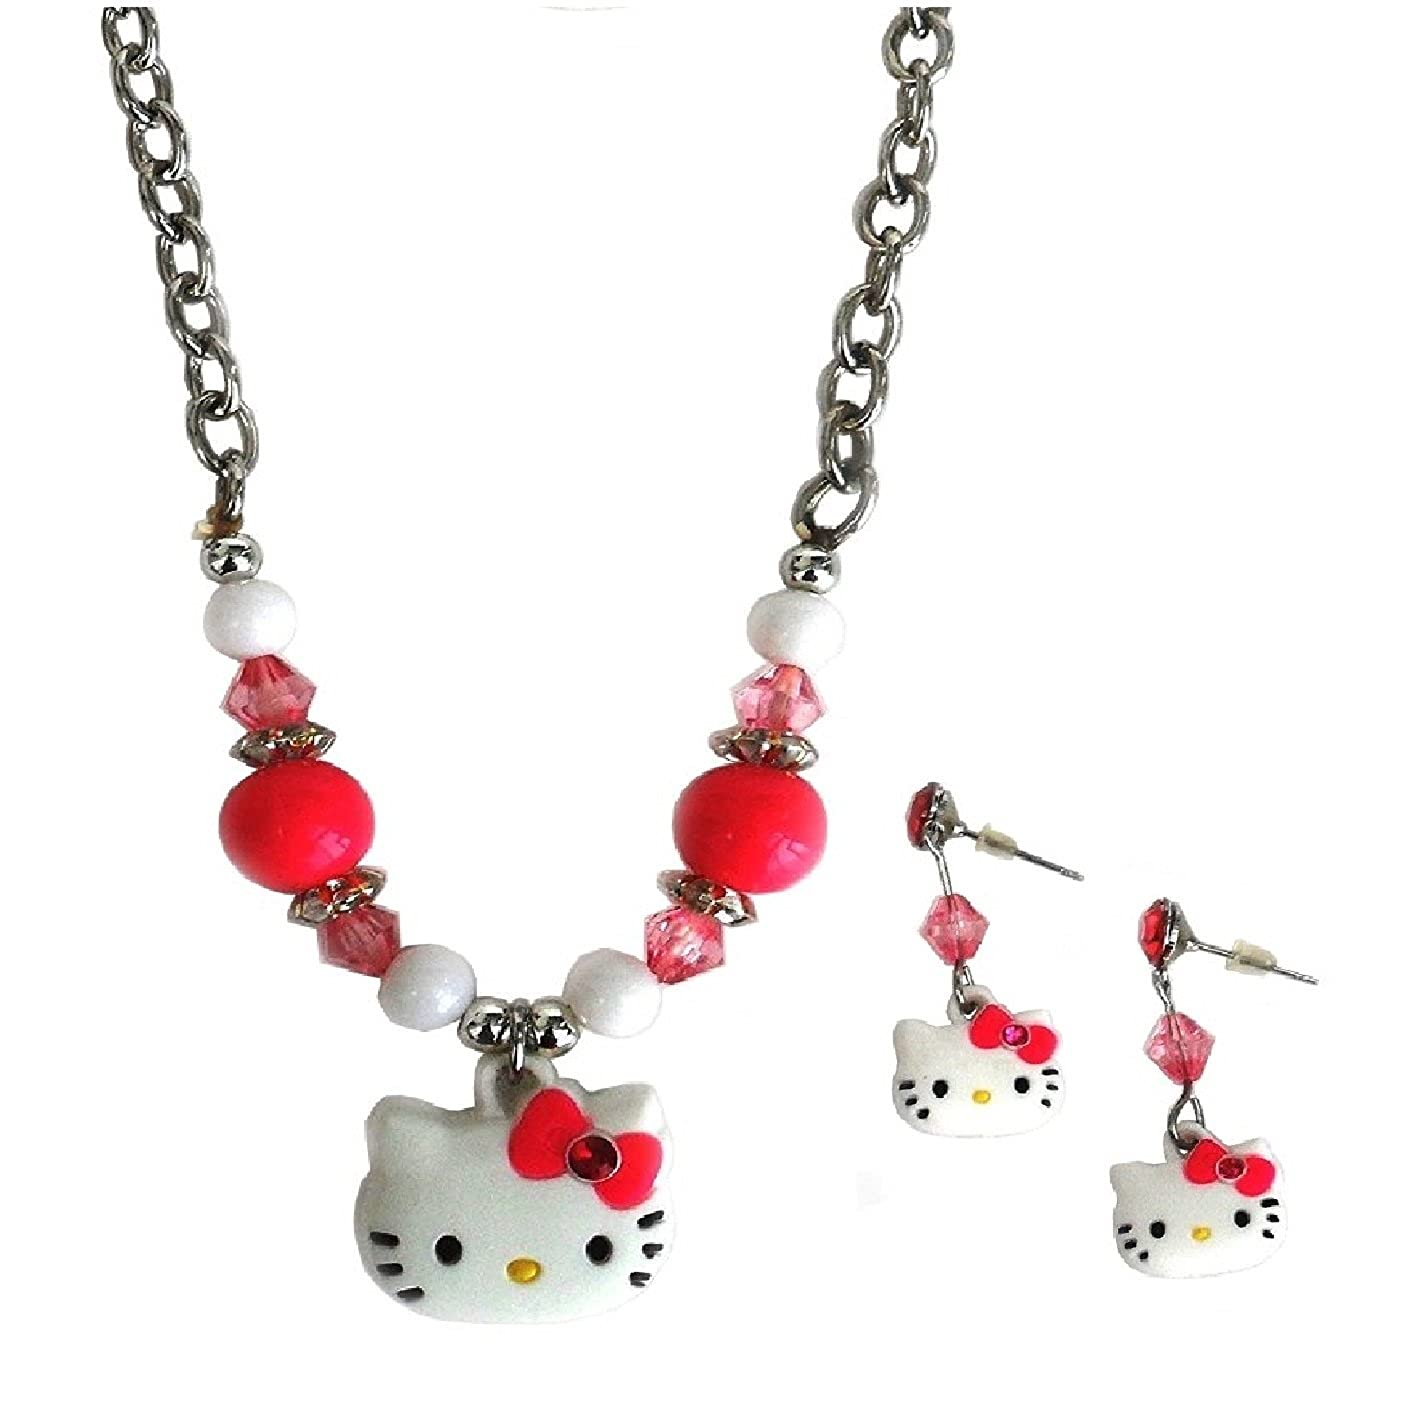 115655a3d Amazon.com: Hello Kitty Necklace & Earrings Fashion Jewelry Set in Gift  Box: Jewelry